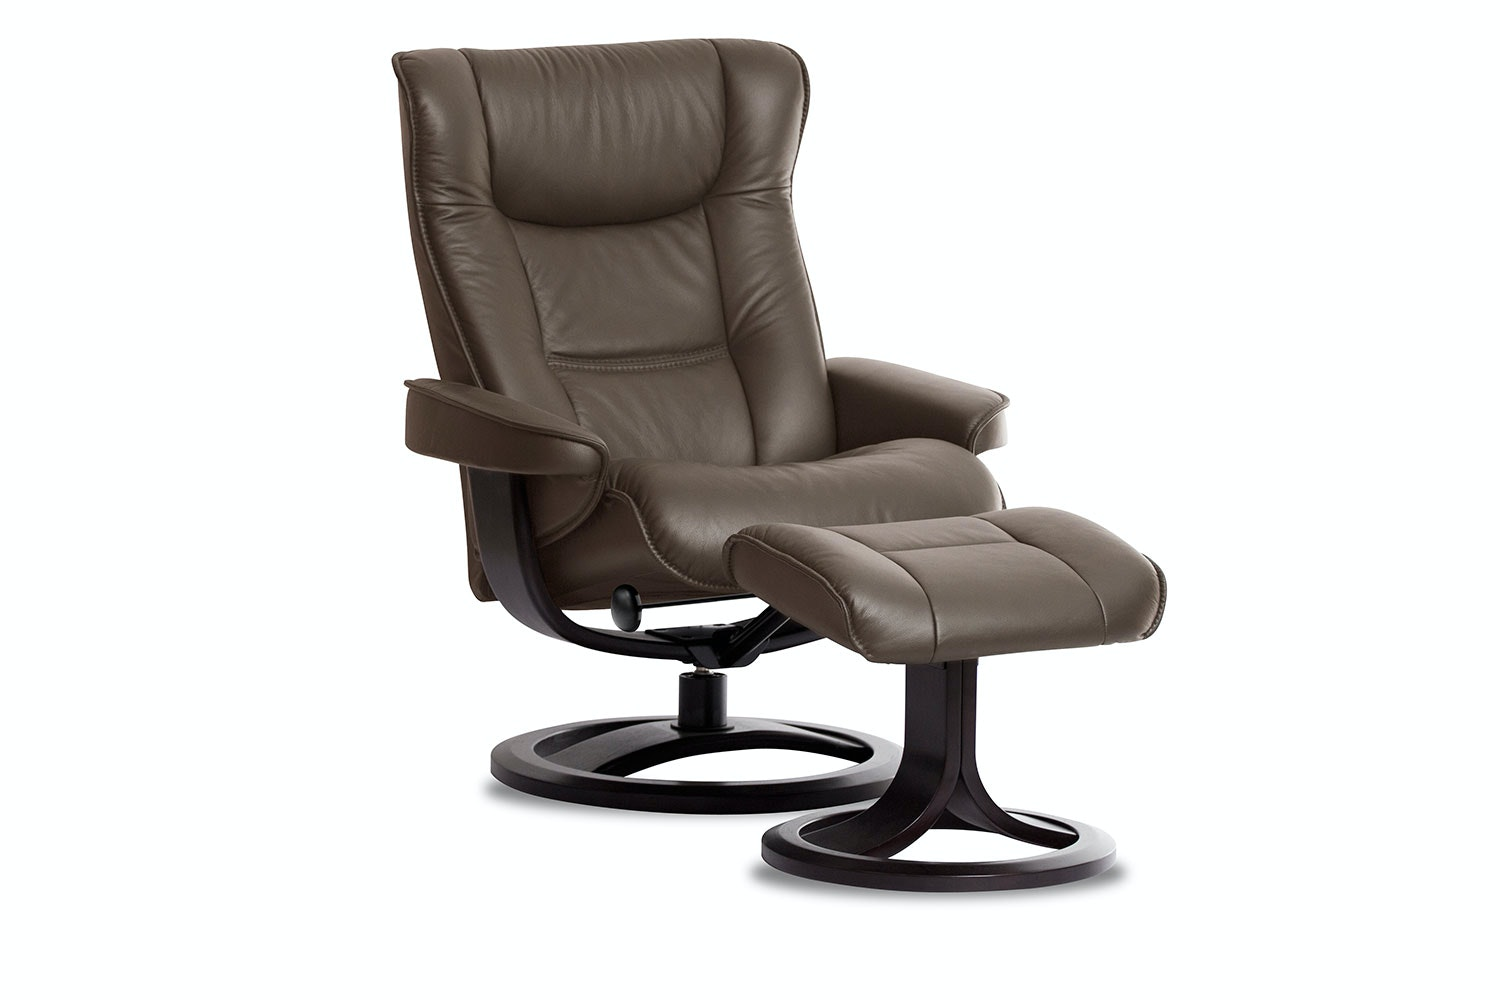 Brage Leather Recliner Chair and Footstool - Large -Trend - IMG